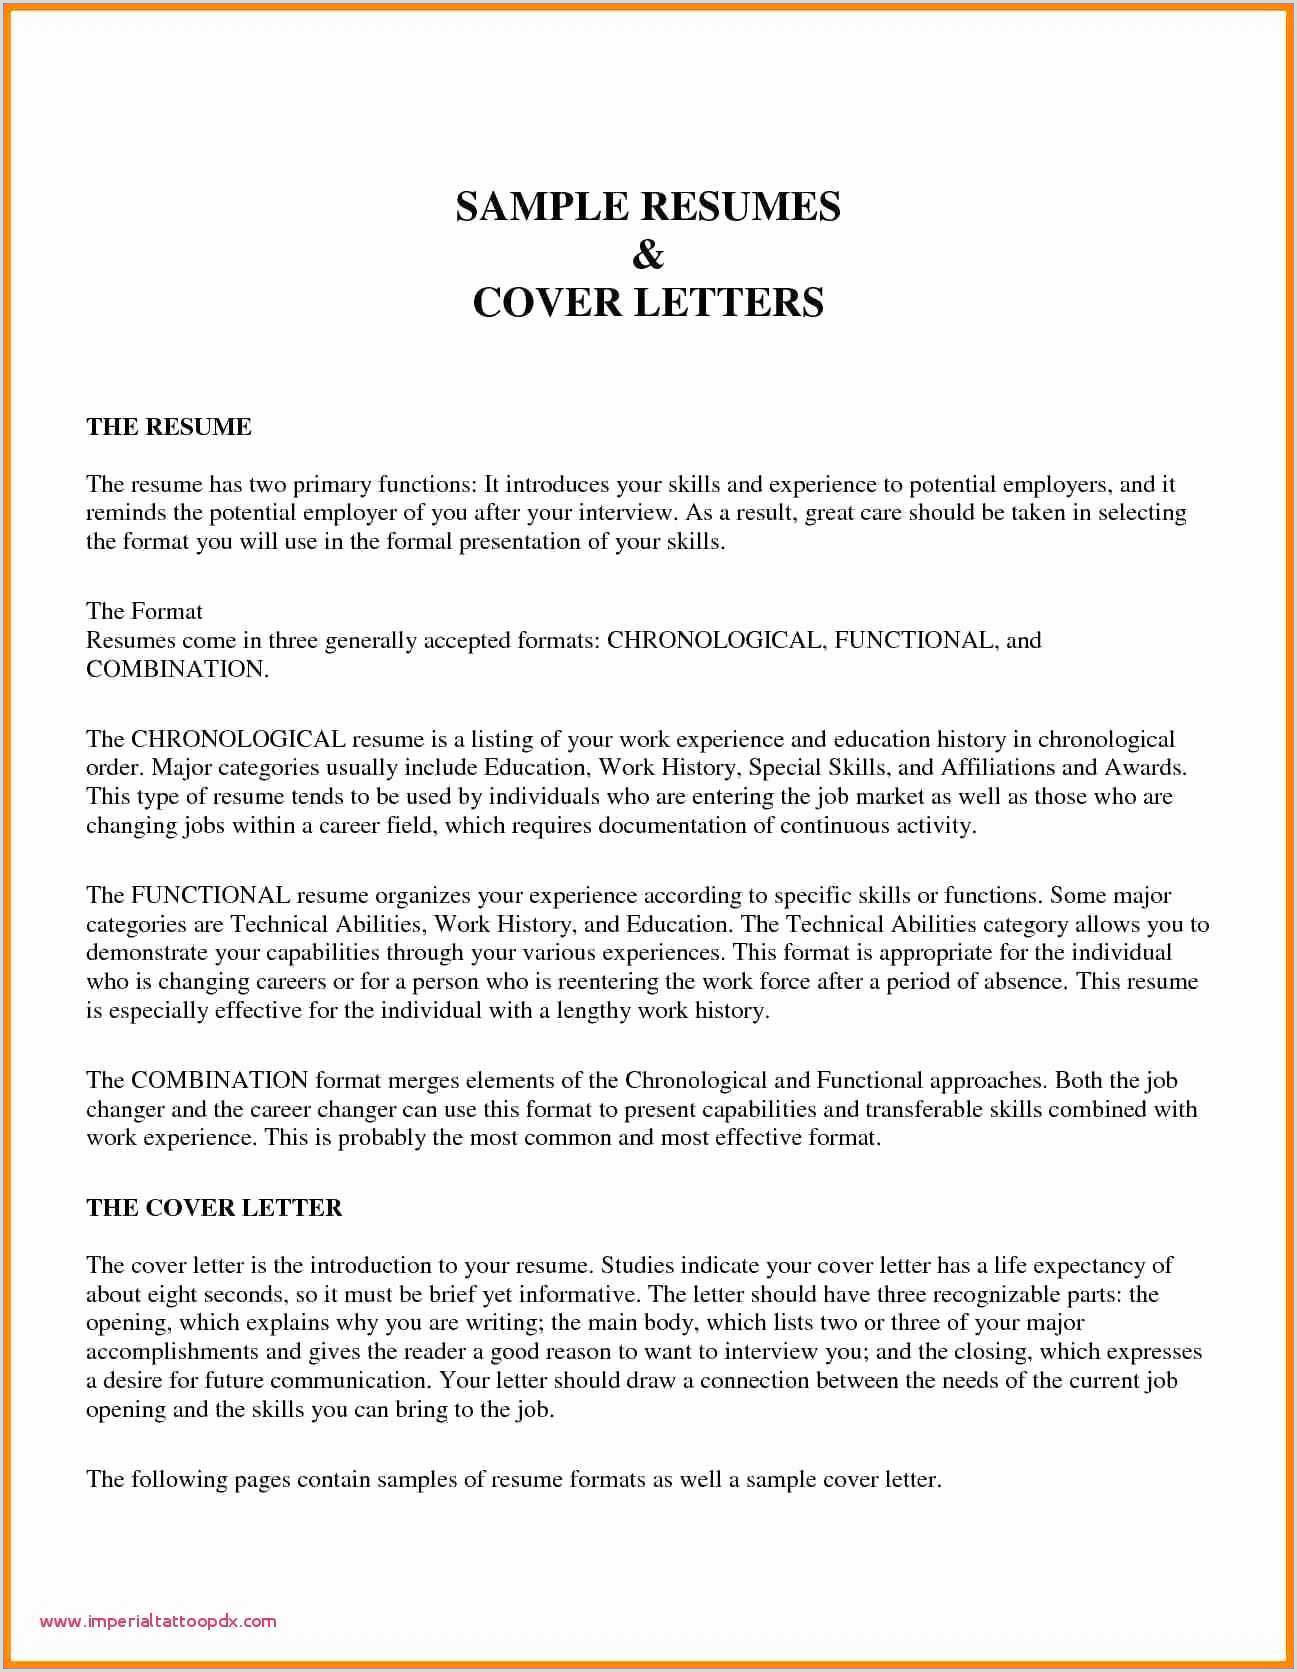 Fresher Resume format Edit Good Resume Examples 650 838 What is the Best Resume